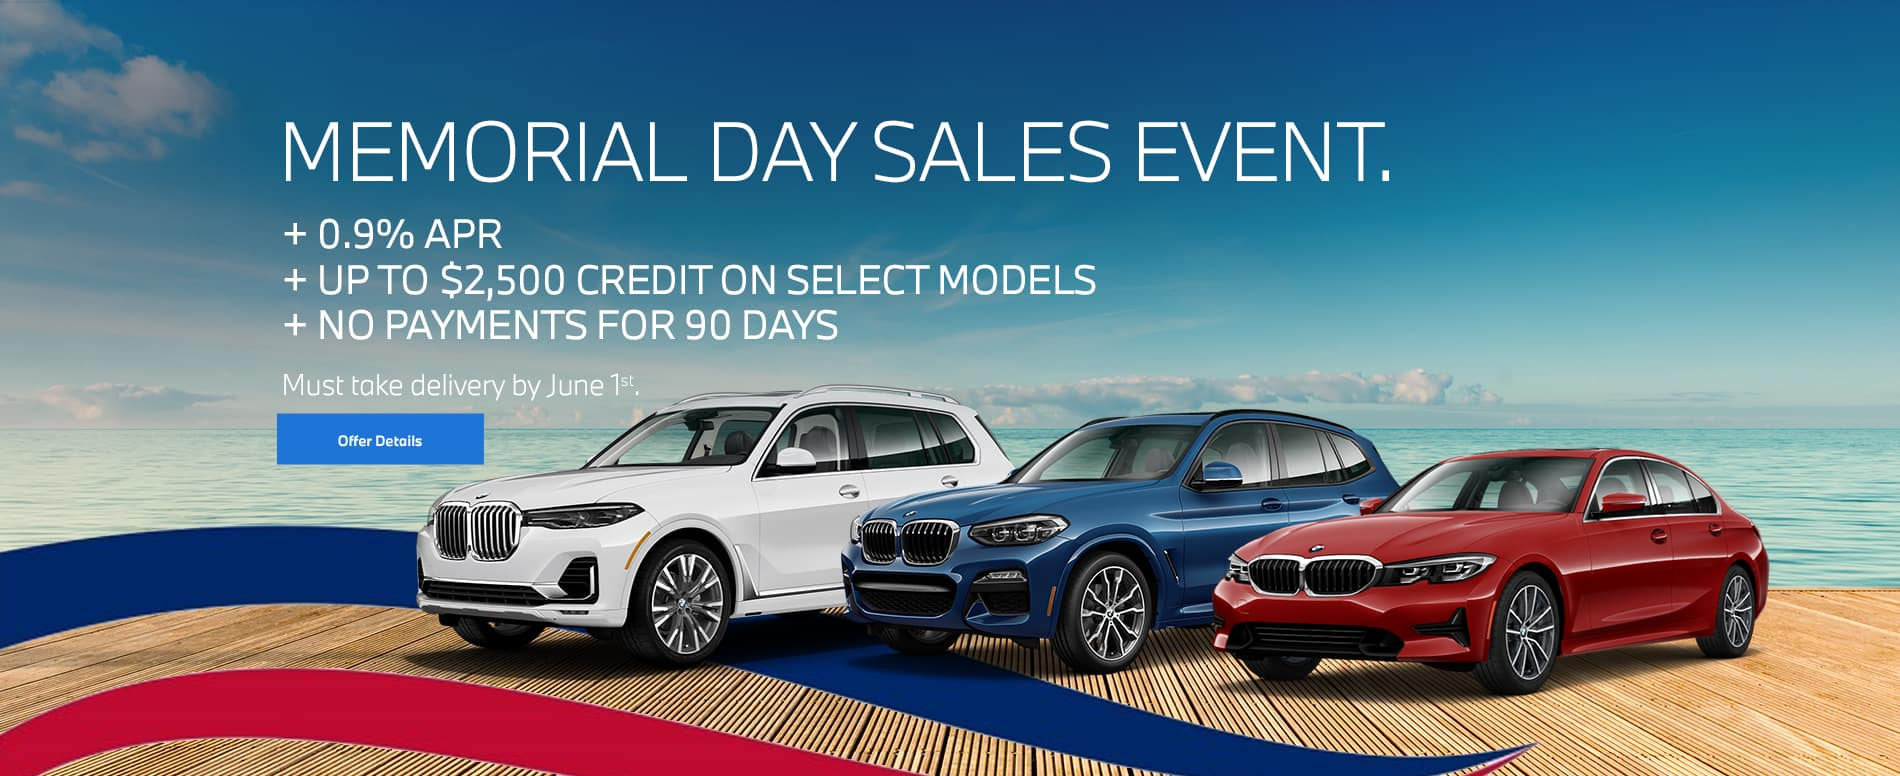 BMW Memorial Day